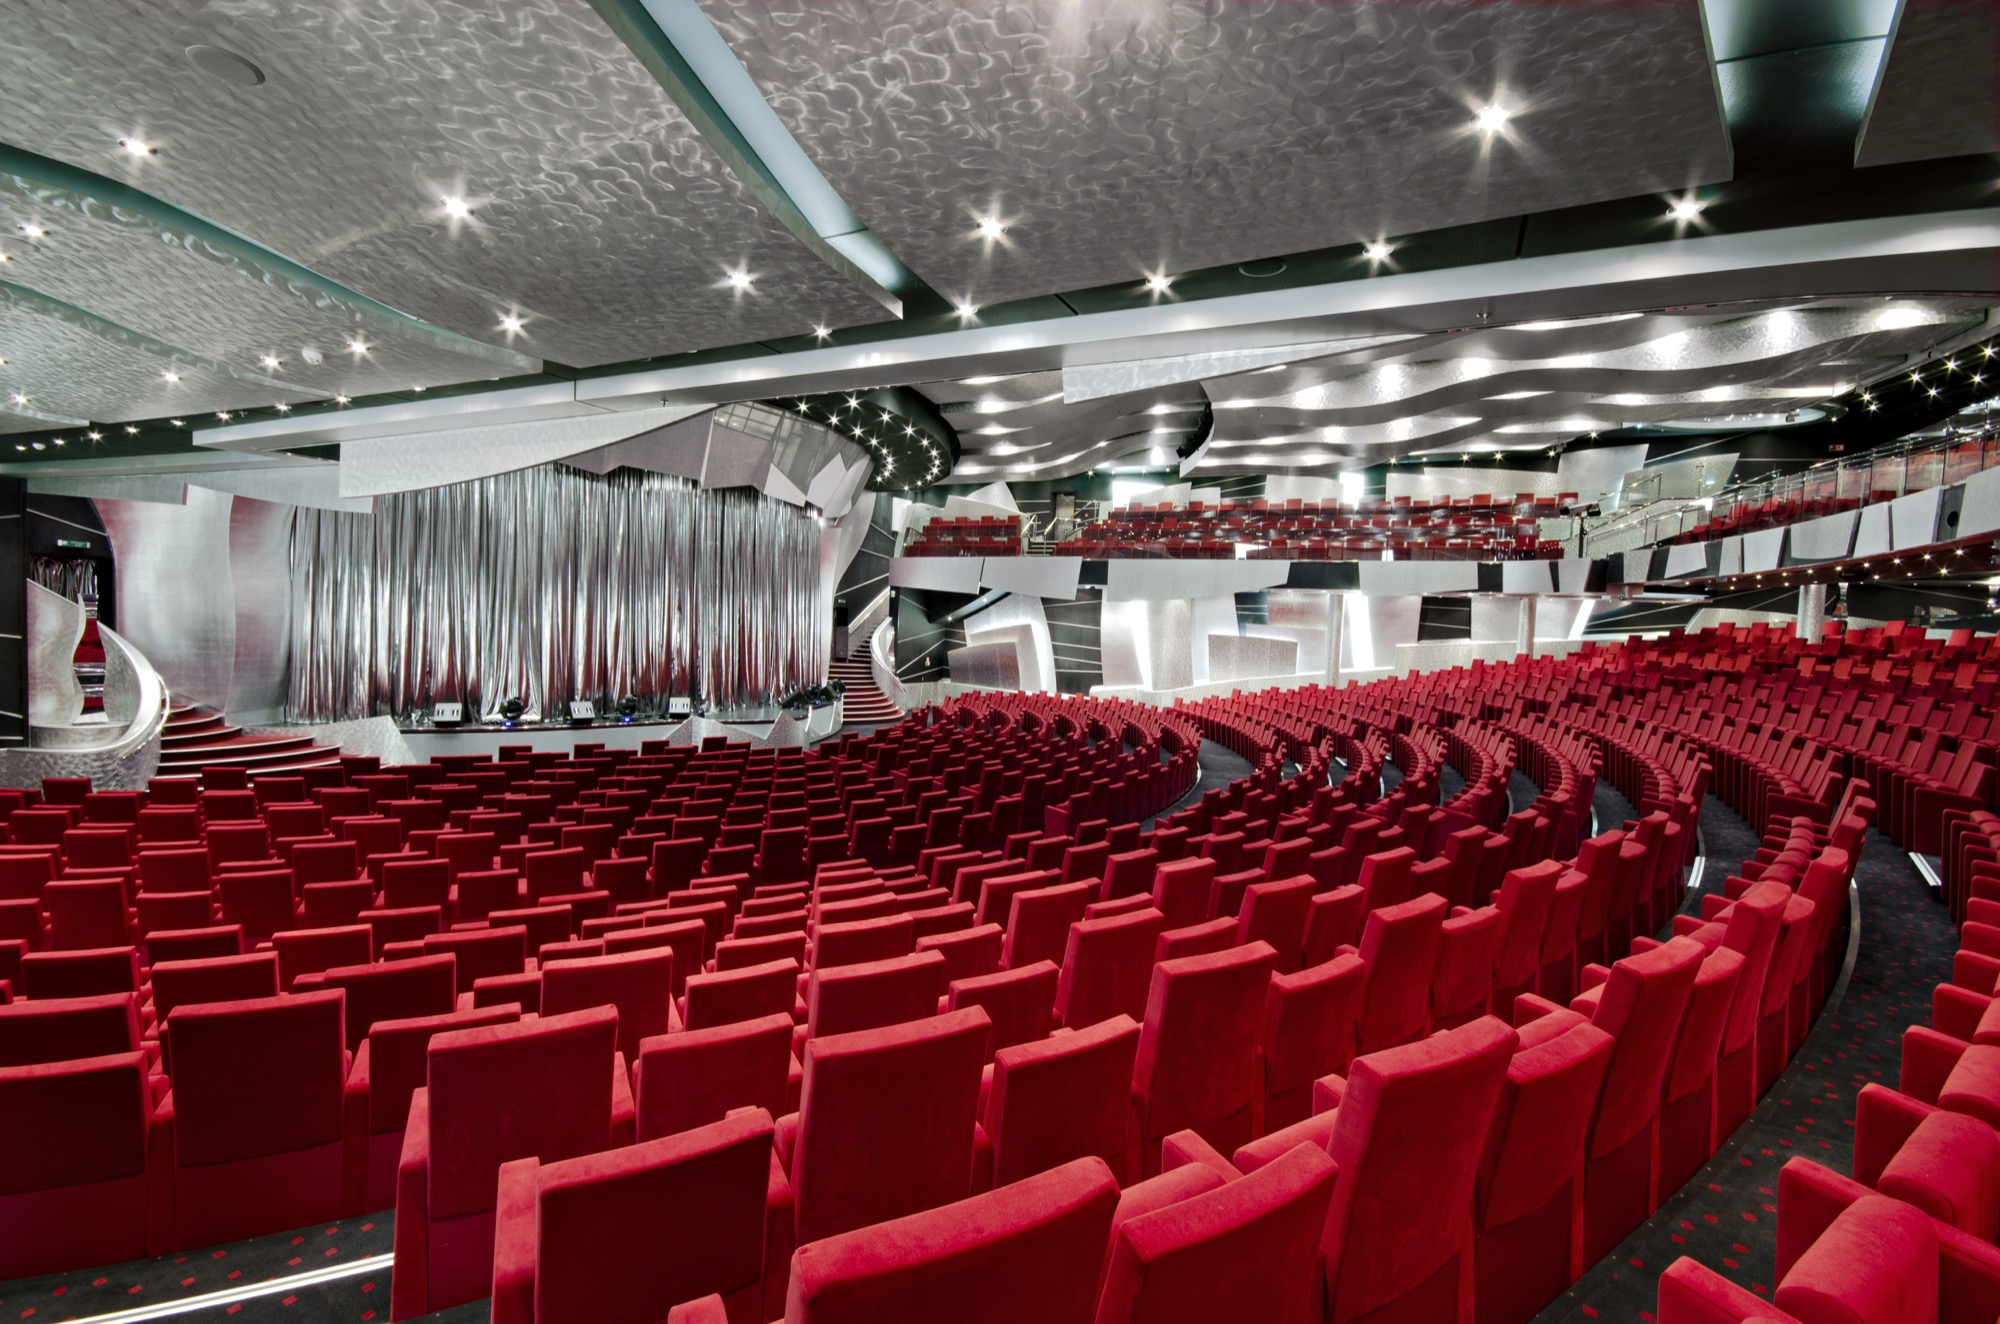 MSC Fantasia Class pantheon theatre.jpg